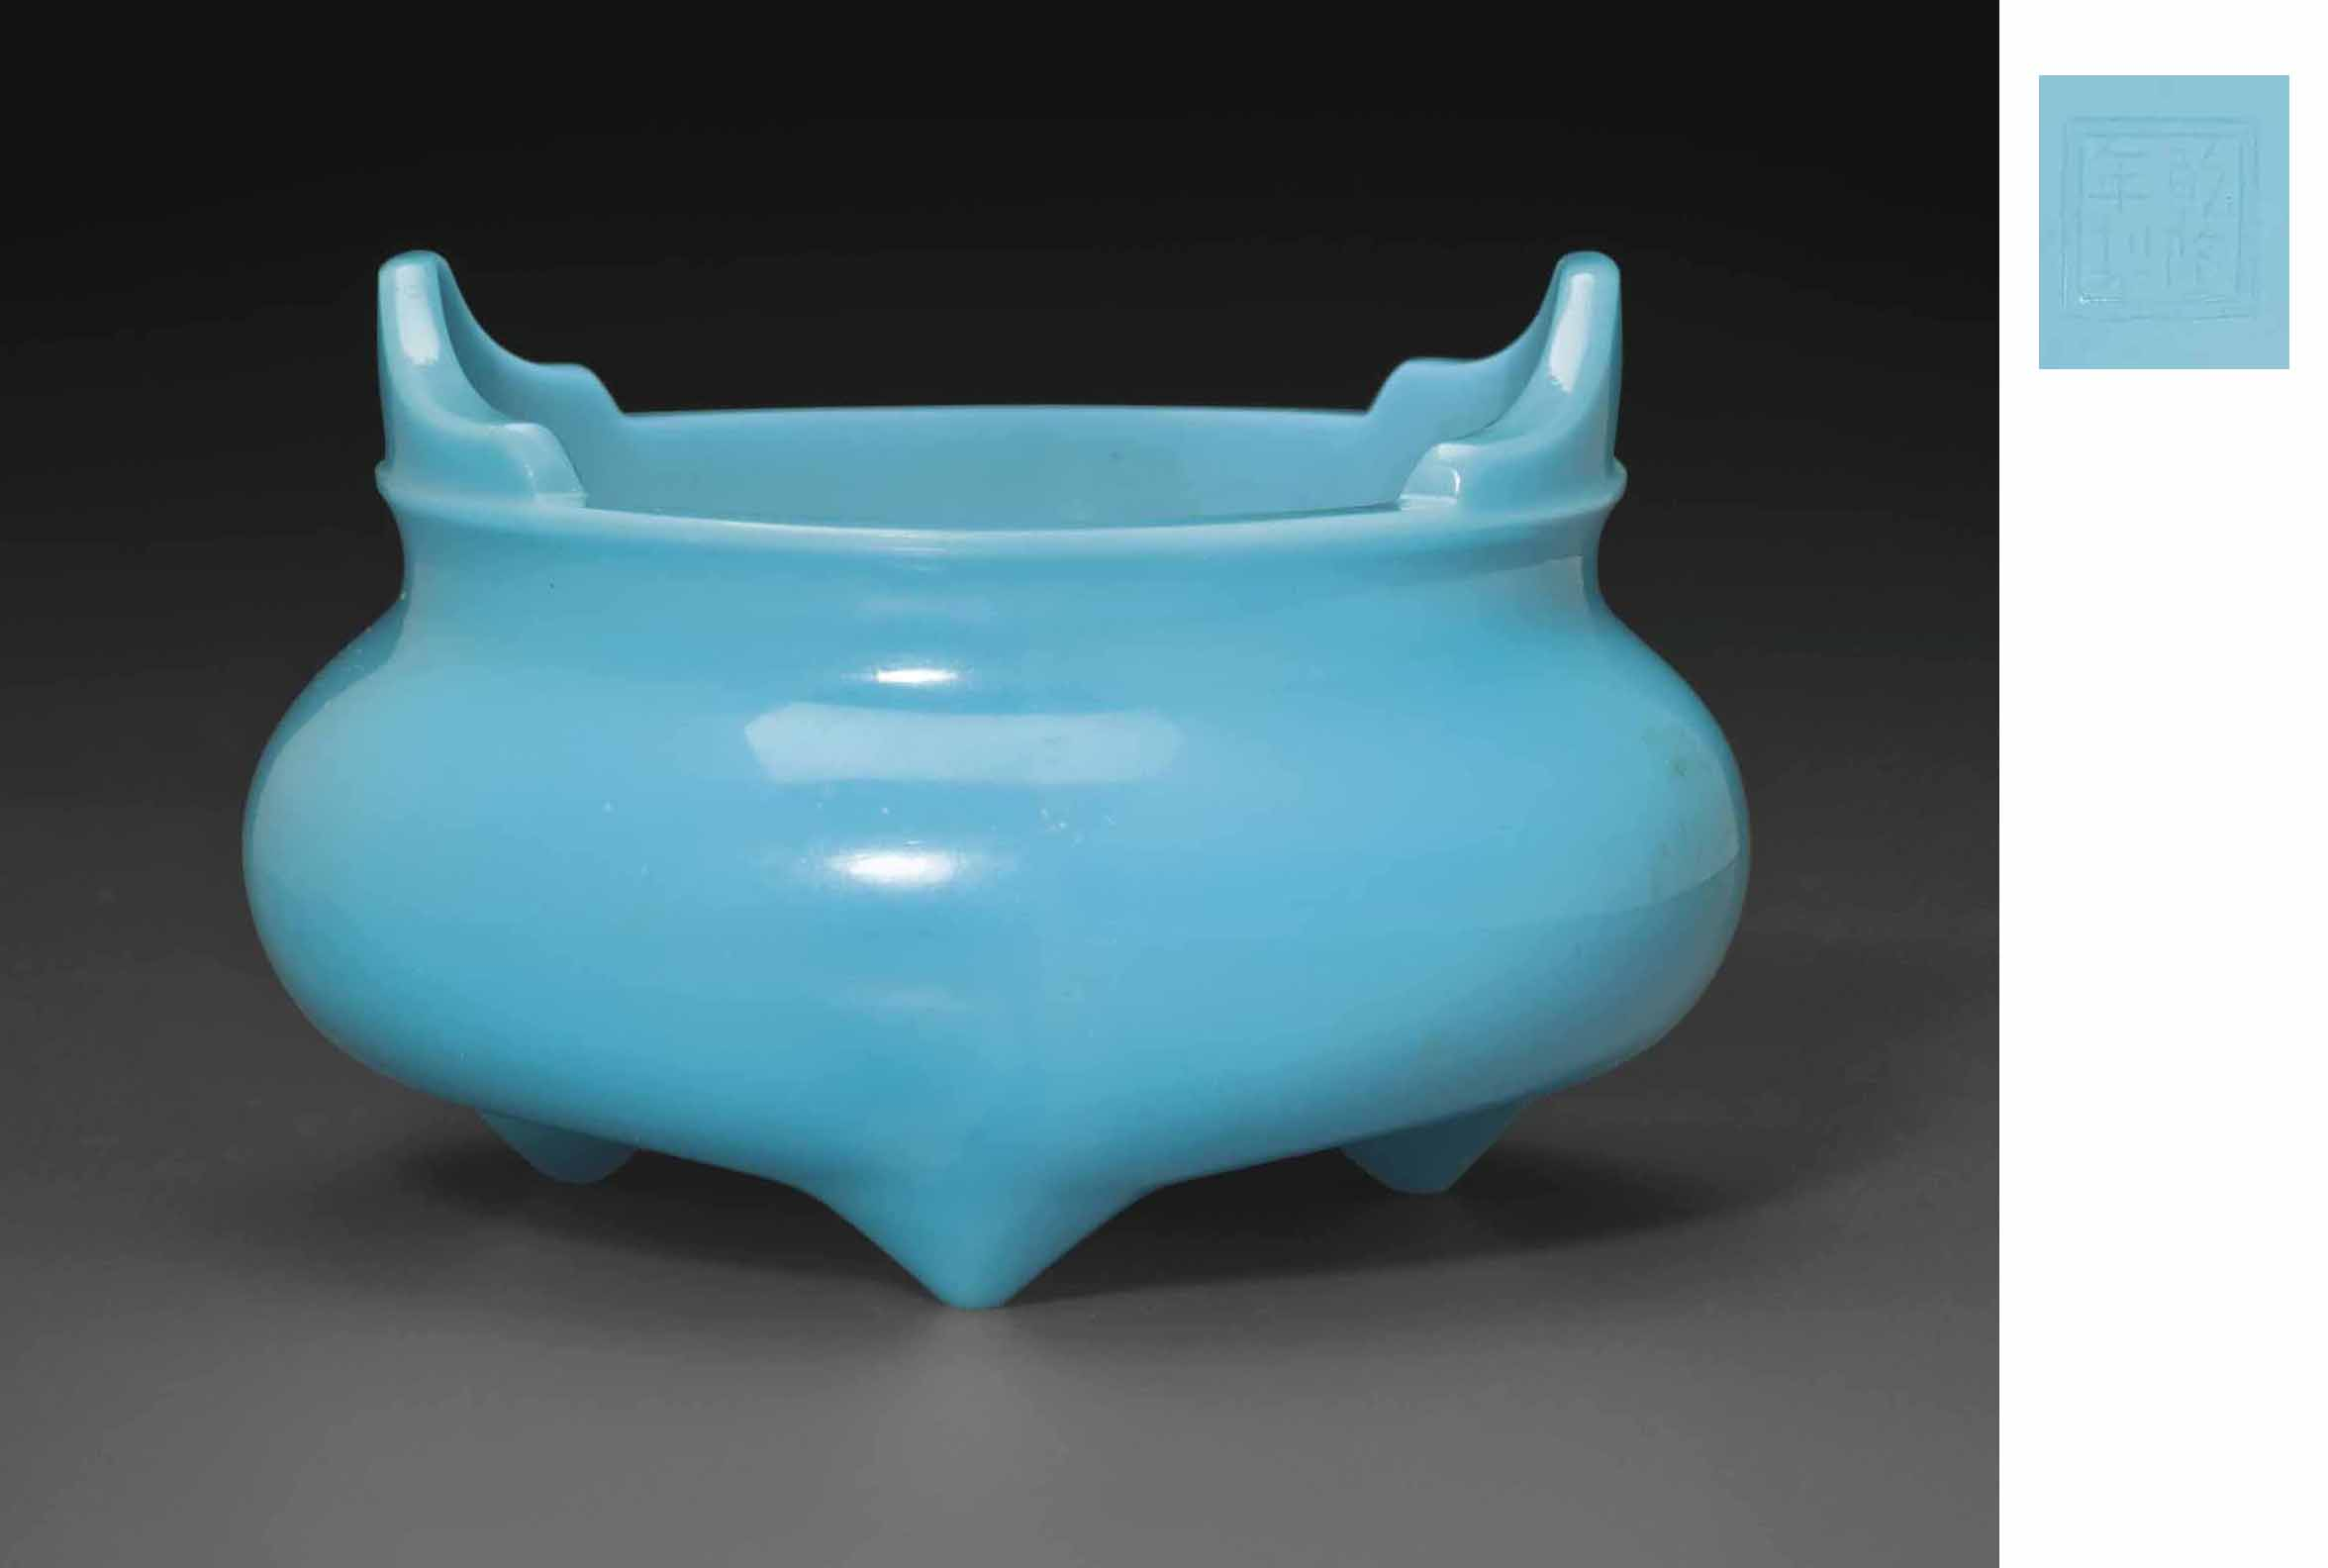 A RARE OPAQUE TURQUOISE GLASS